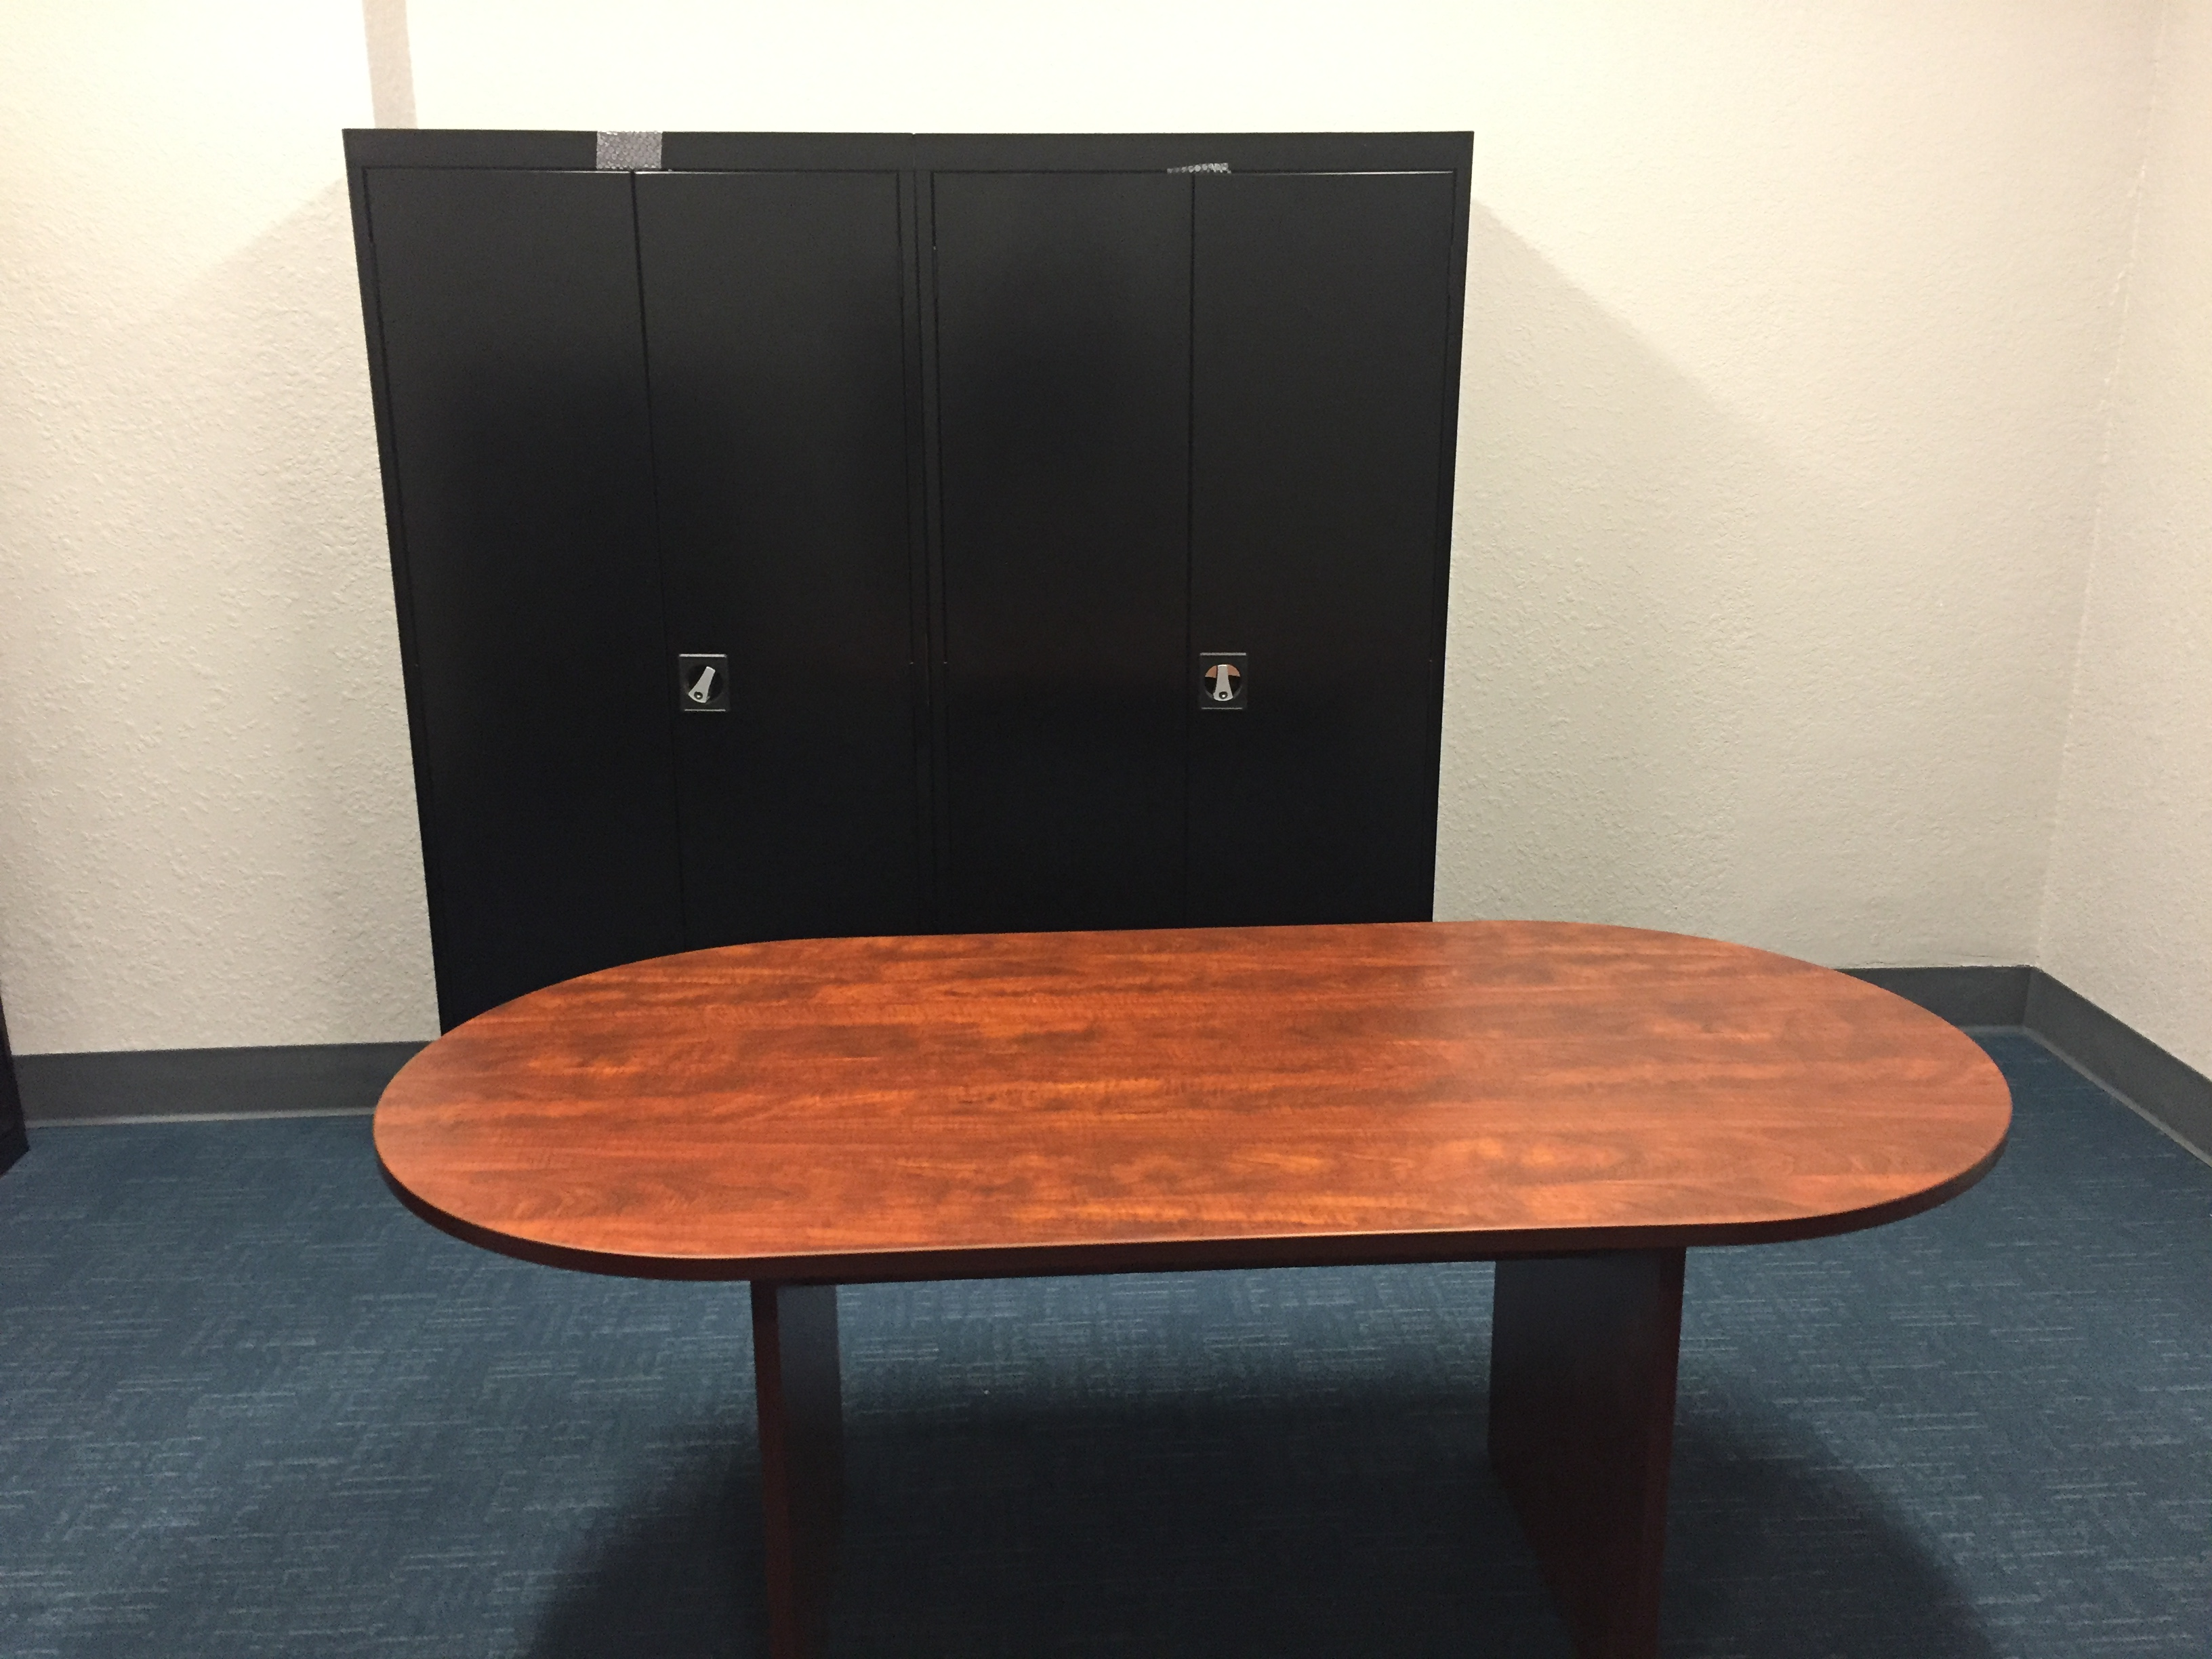 business-furniture-supplier-in-fort-walton-beach-florida.png